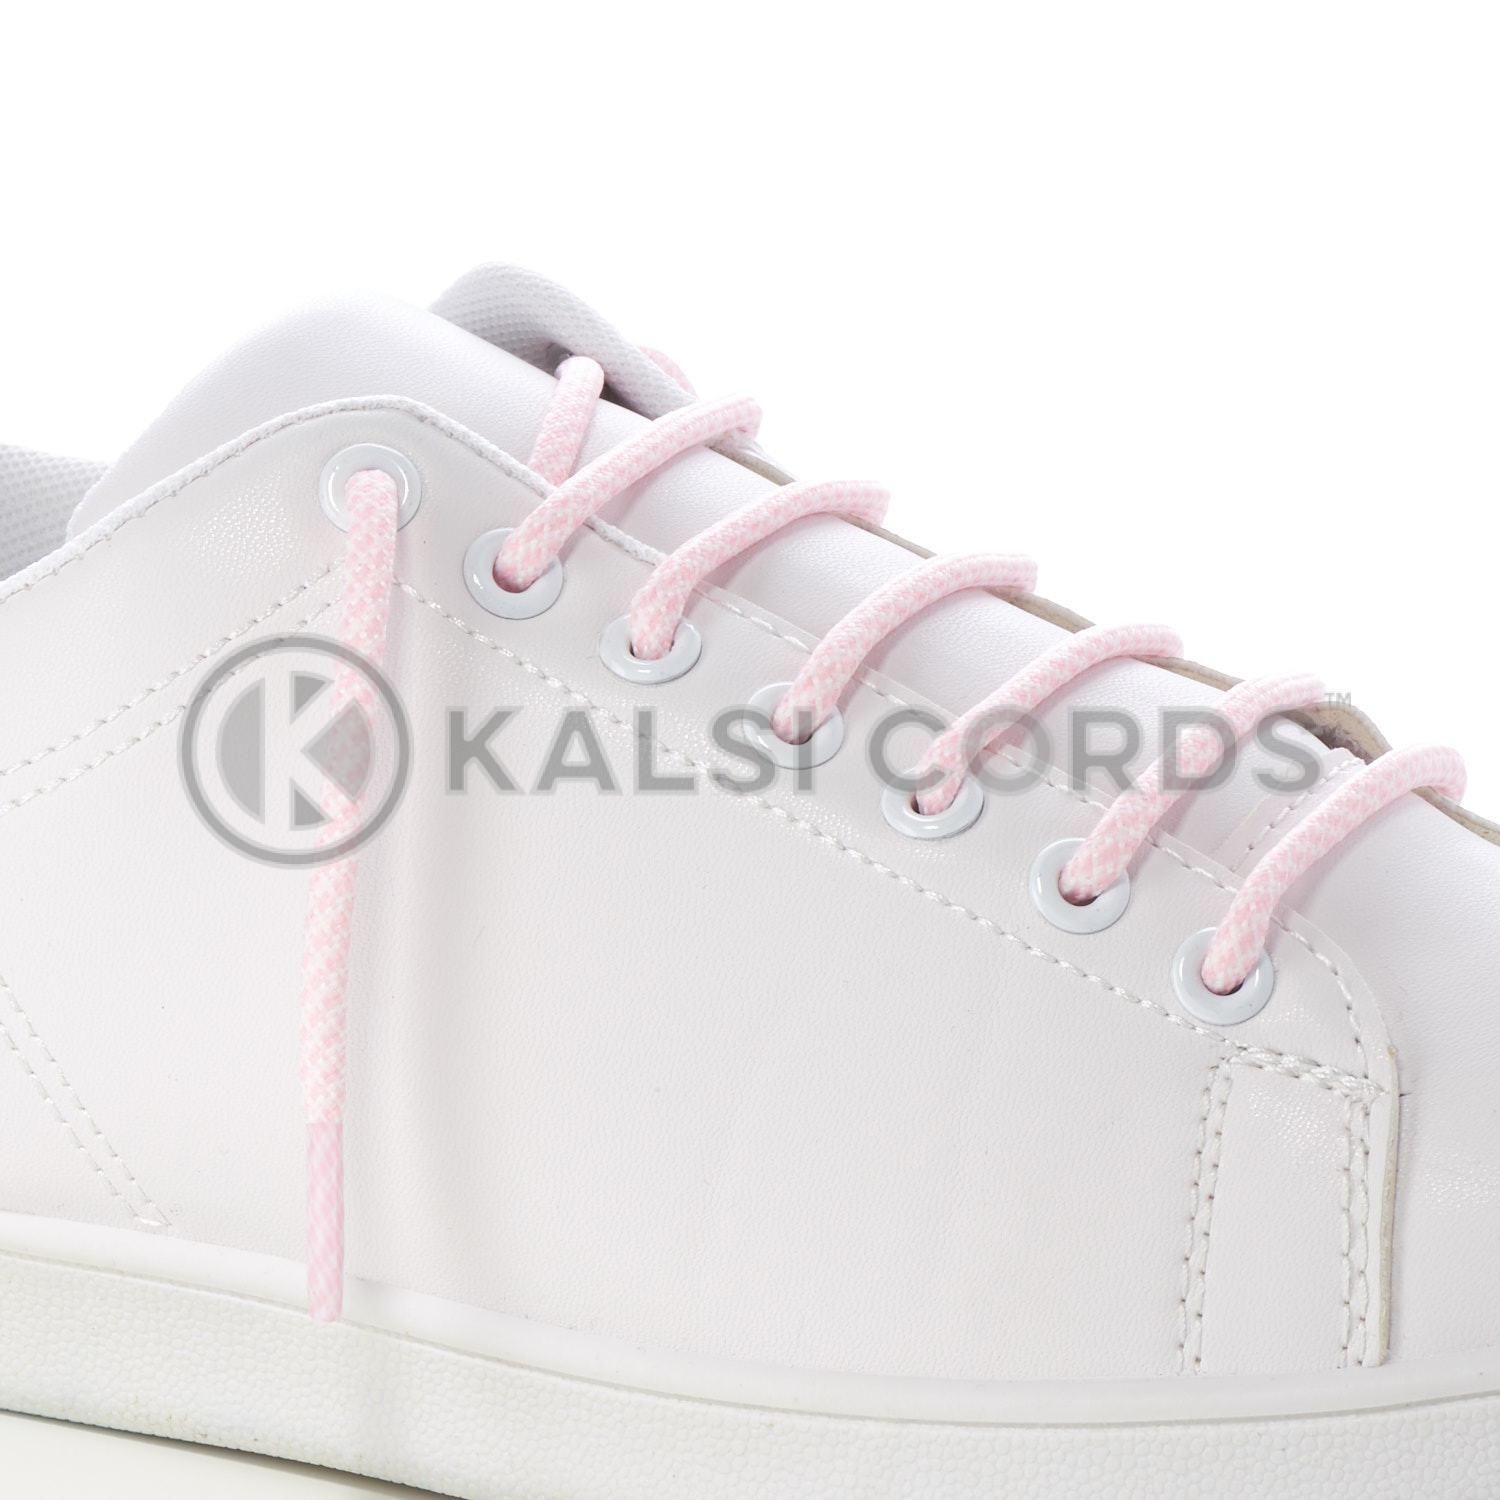 T655 5mm Round Cord Honeycomb Shoe Lace Baby Pink White Kids Trainers Adults Adidas Yeezy Boost Hiking Walking Boots Kalsi Cords